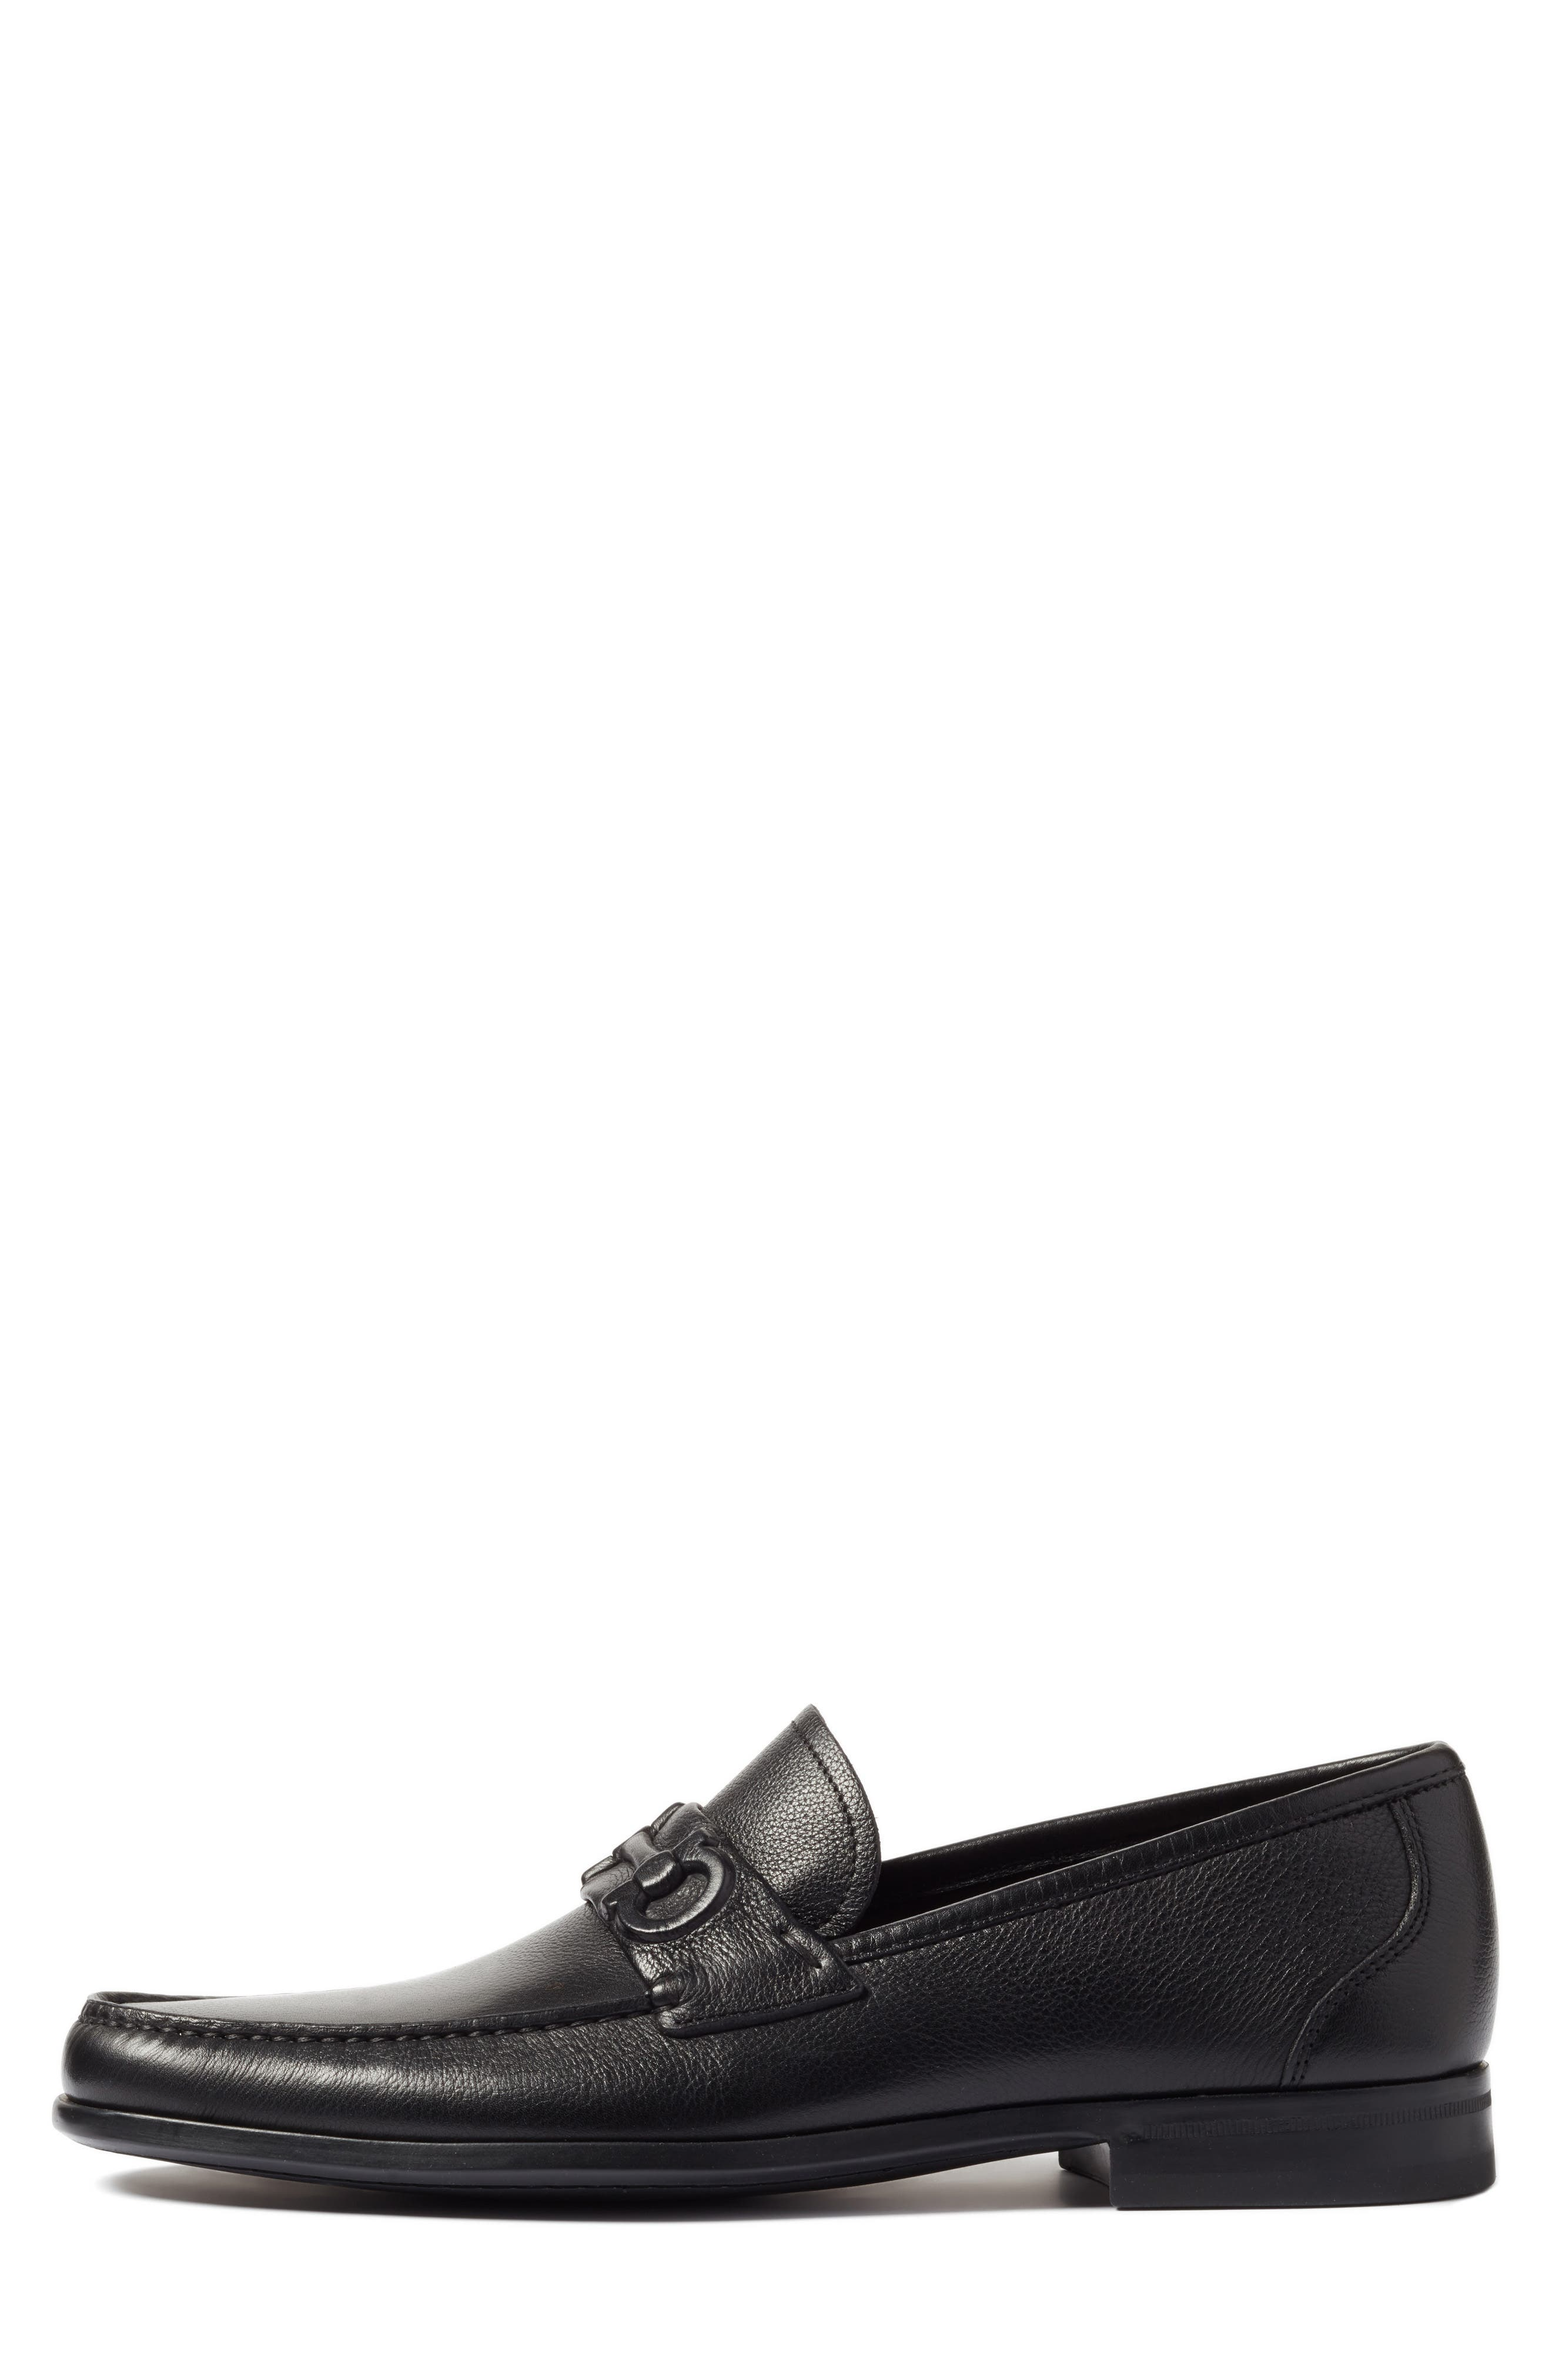 Bit Loafer,                             Alternate thumbnail 3, color,                             Nero Leather